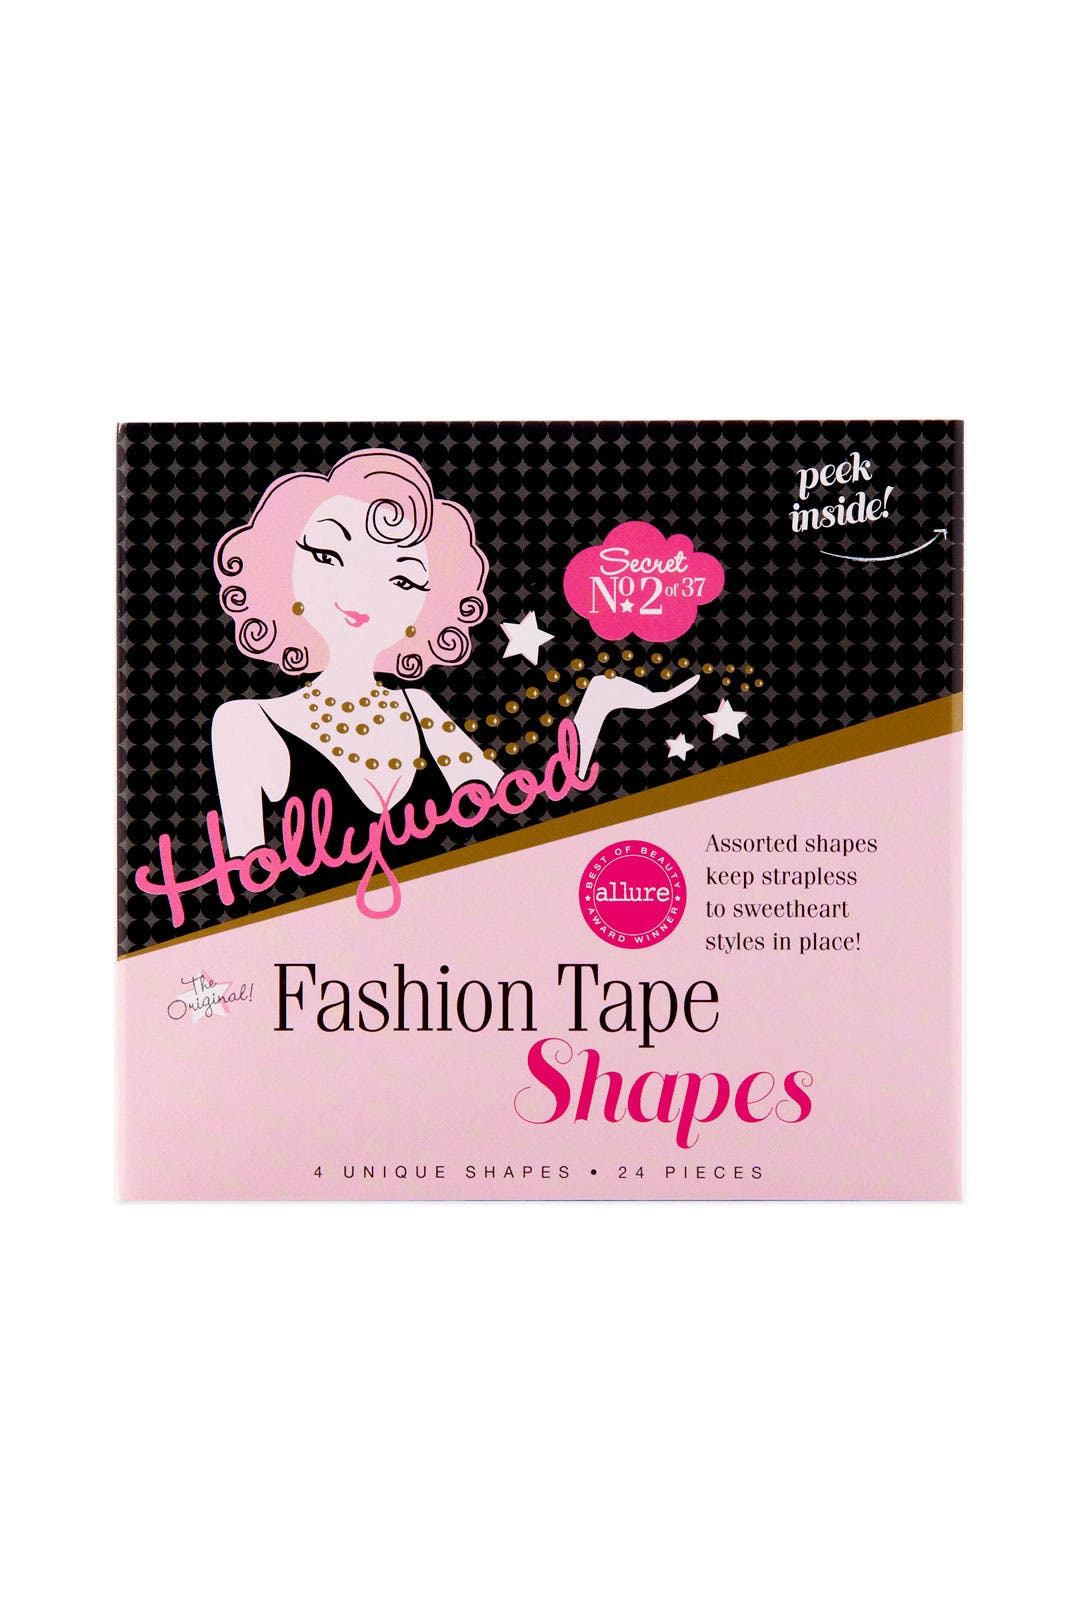 Fashion Tape Shapes by Hollywood Fashion Secrets